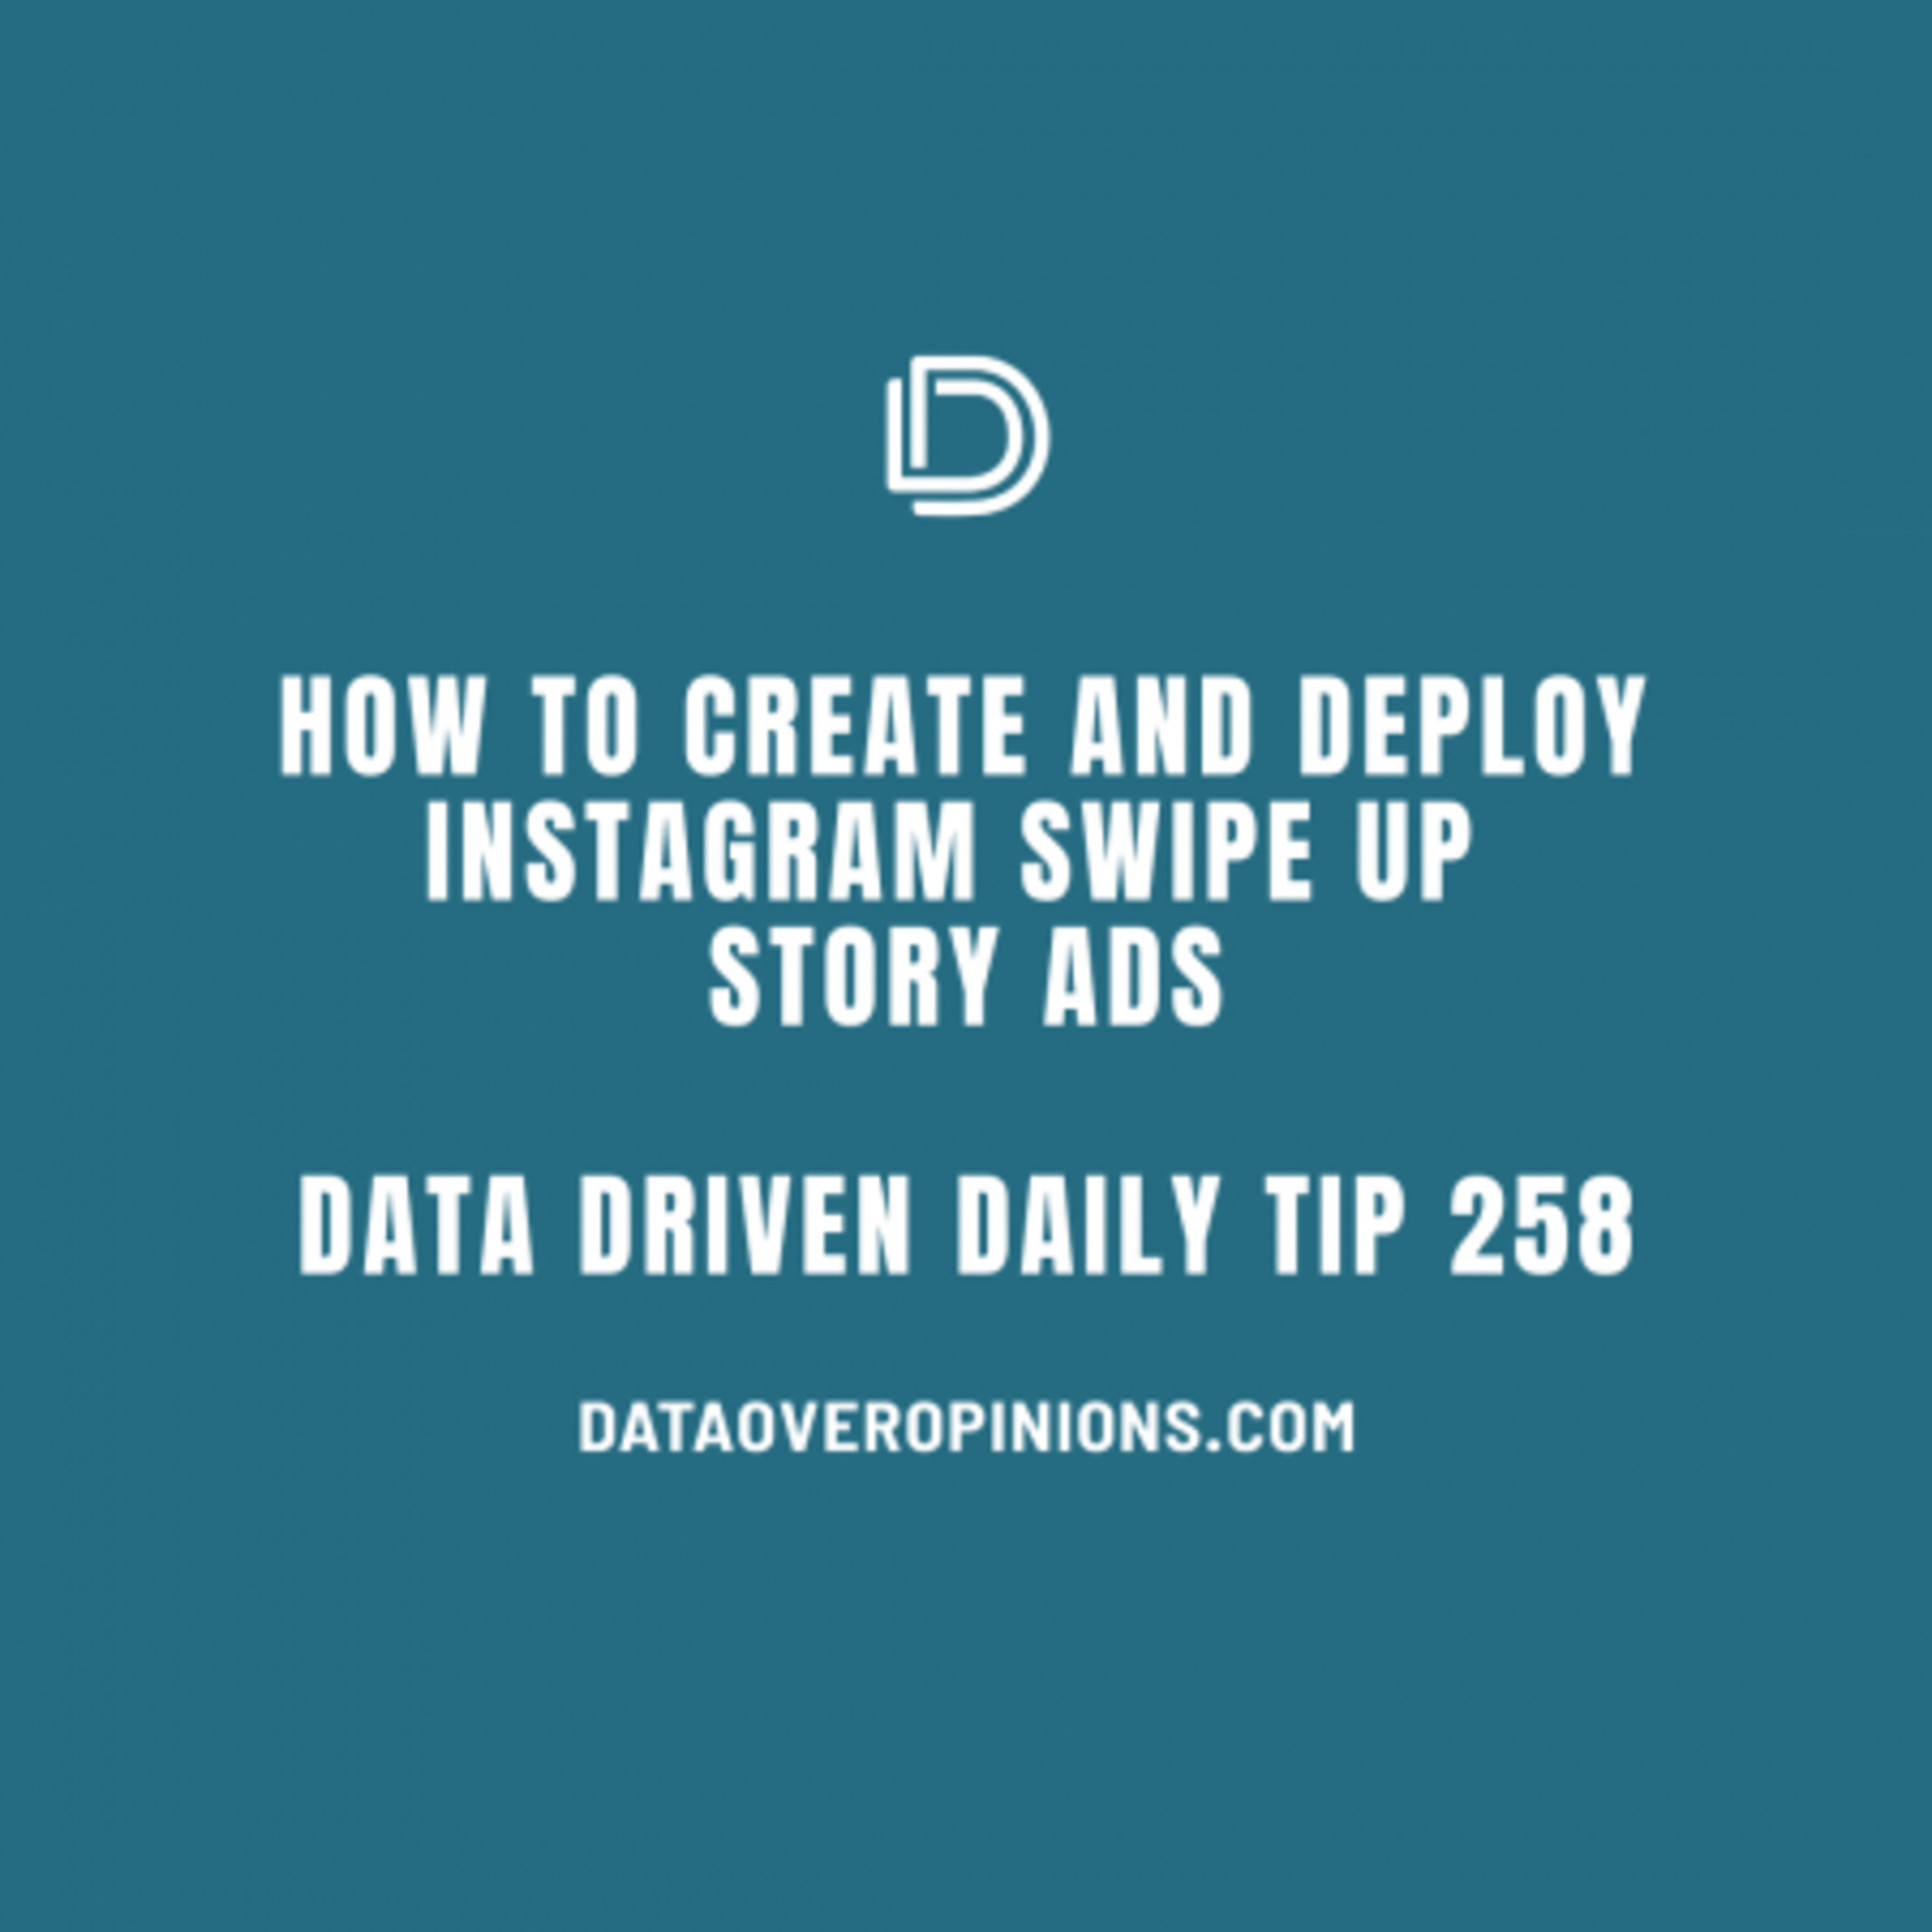 Ep.136: How To Create And Deploy Instagram Story Swipe Up Ads: Data Driven Daily Tip 258